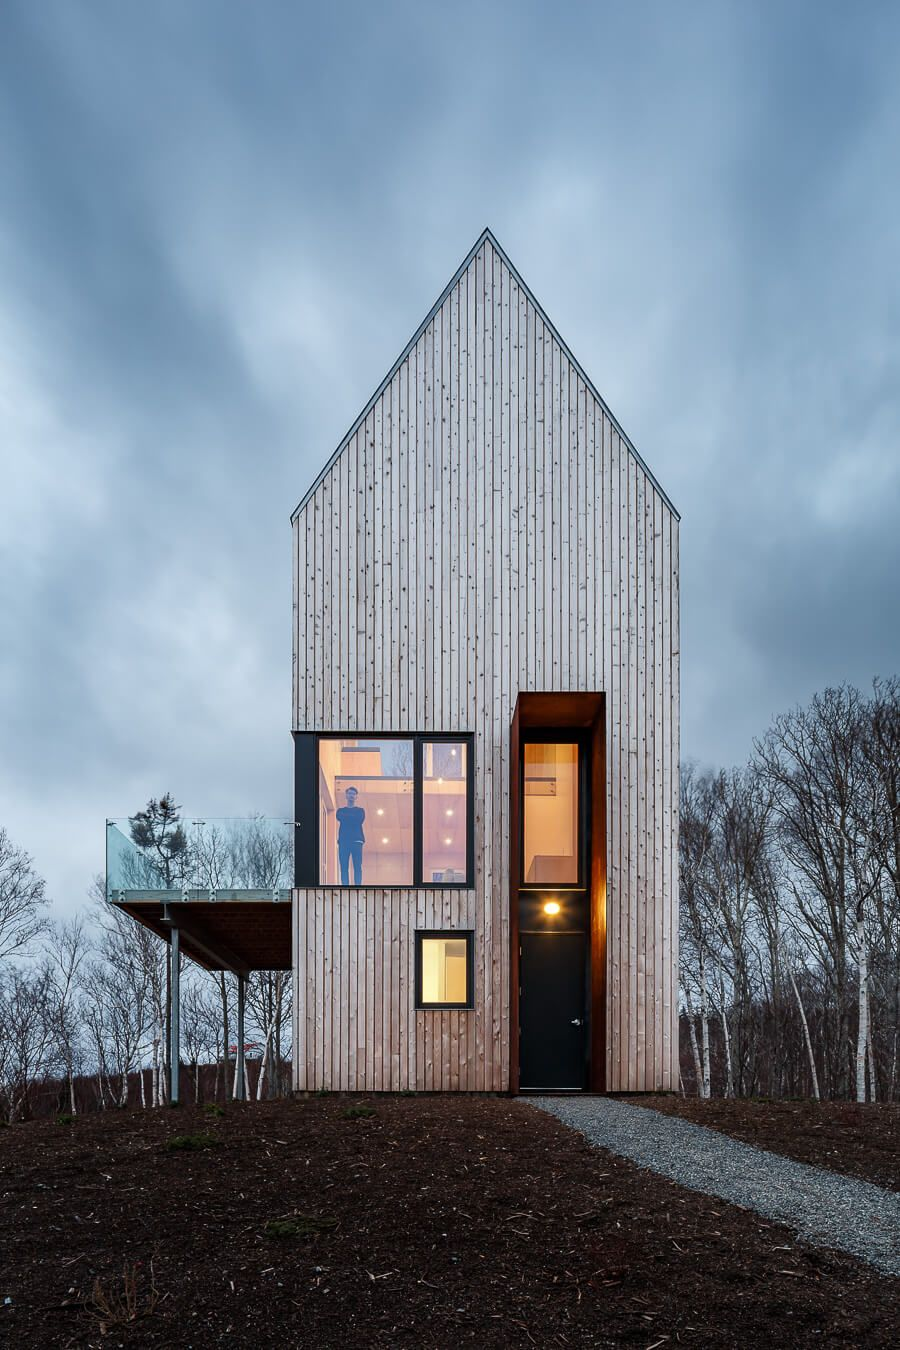 a modern cabin architecture design located in cape breton nova scotia this is a single - Modern Cabin Design